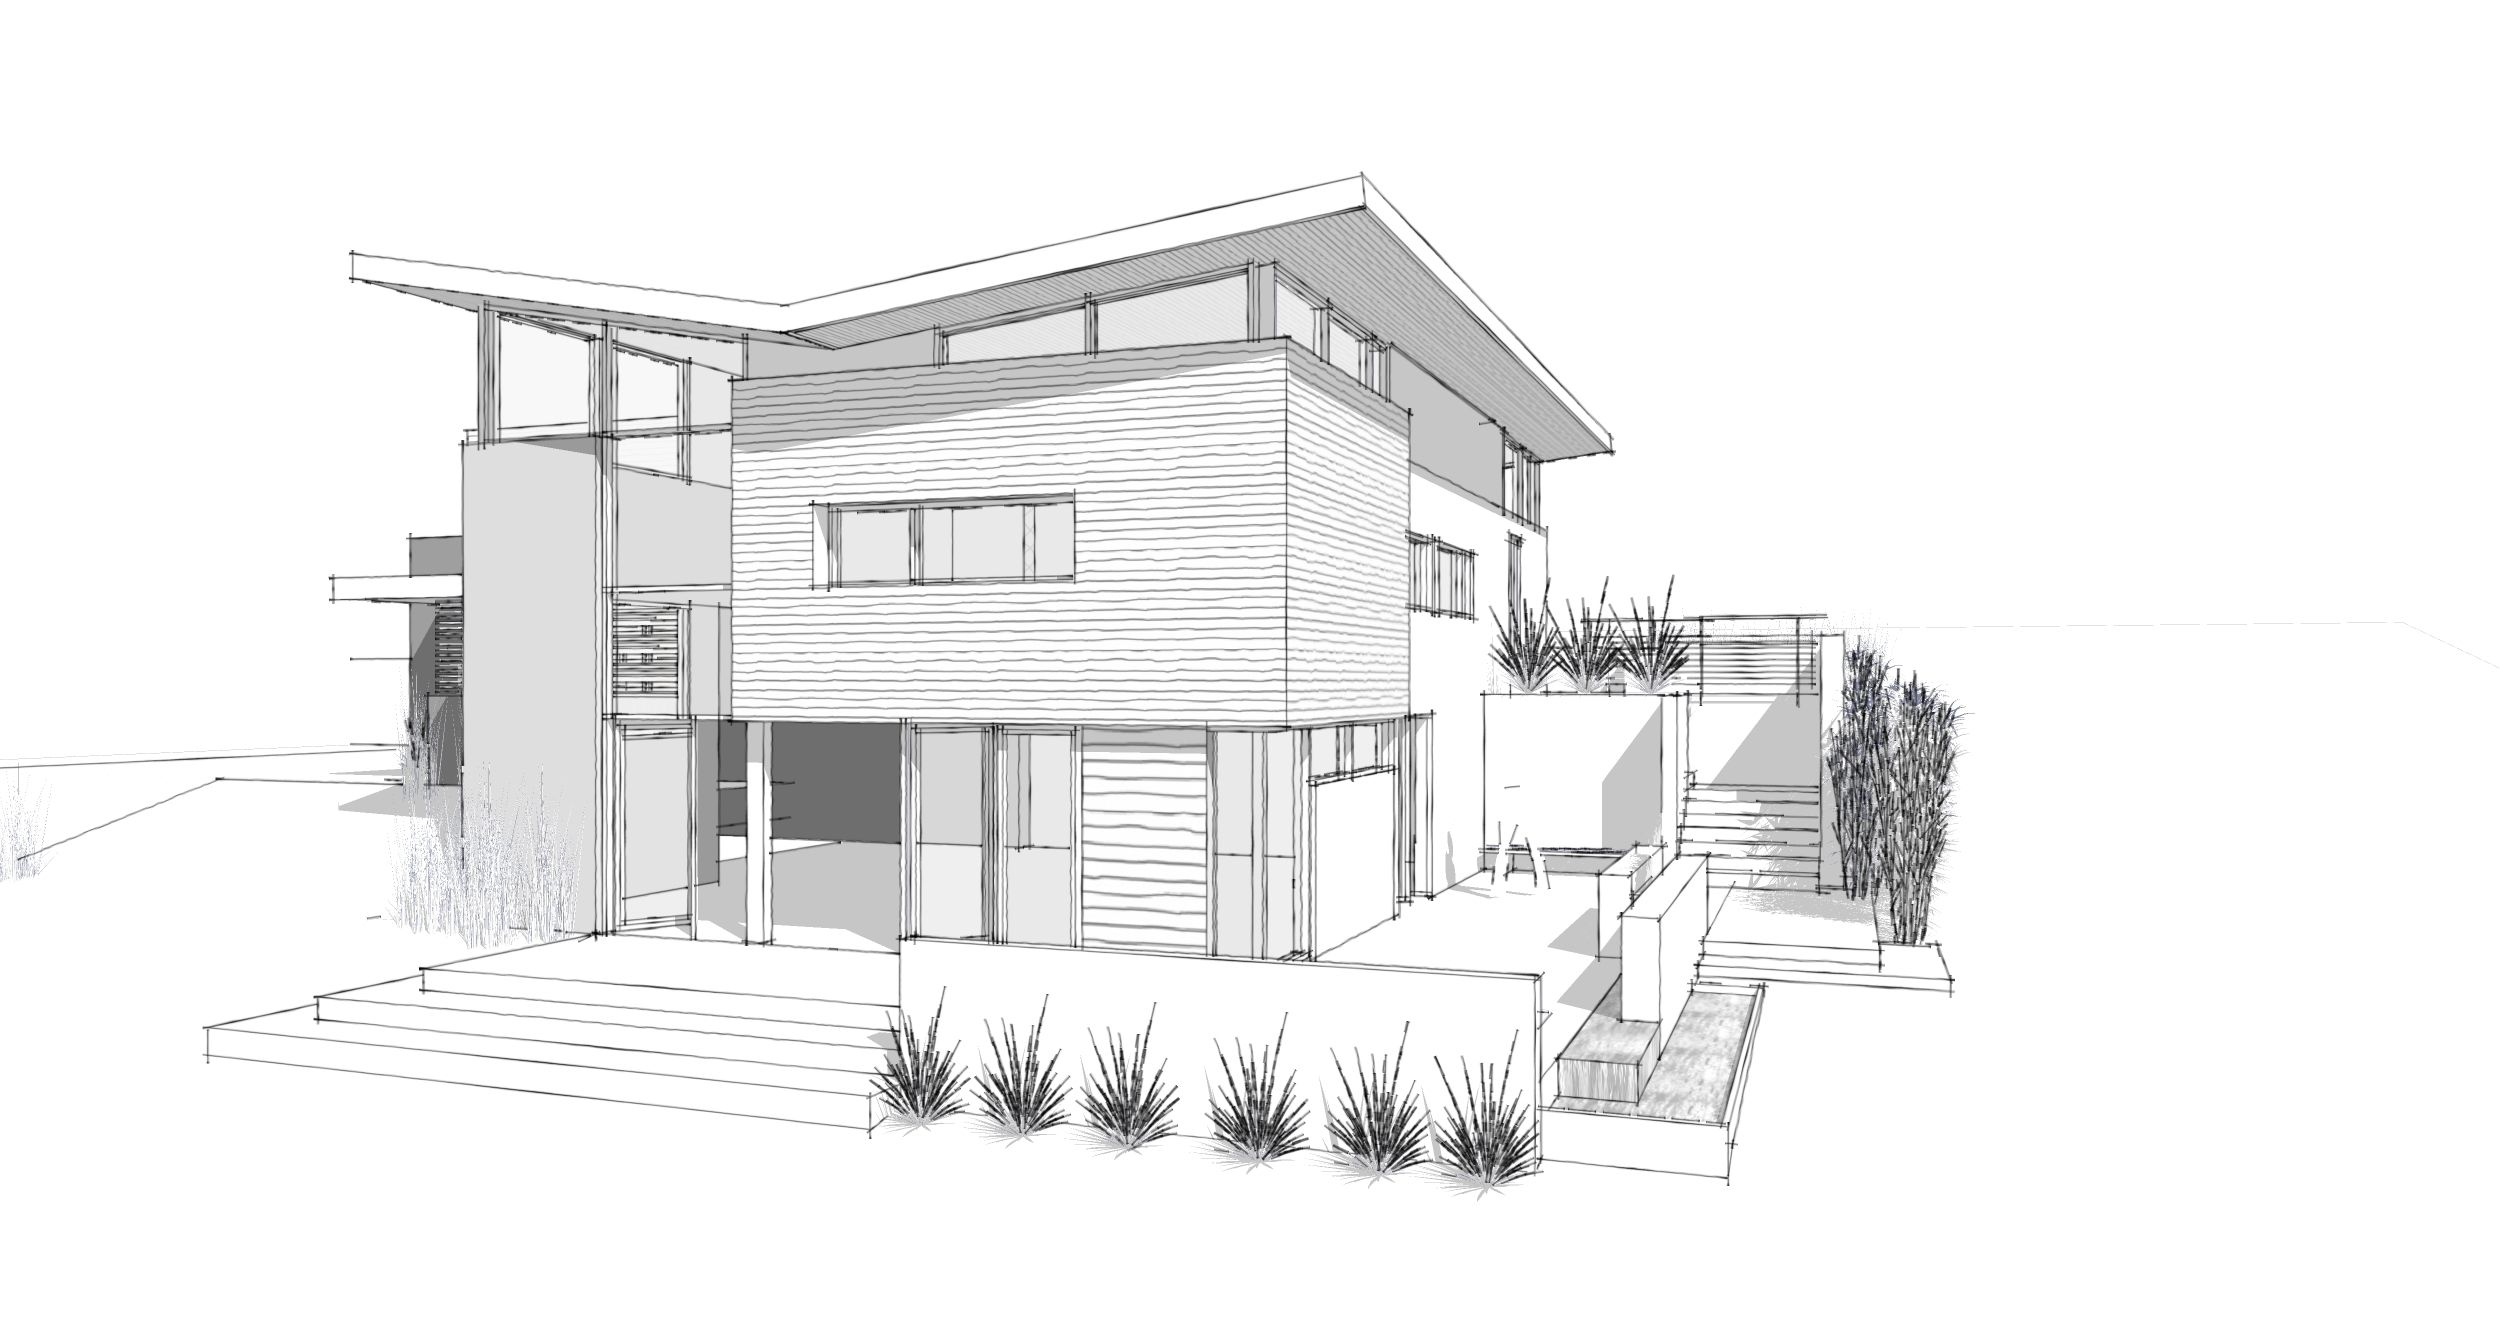 Modern home architecture sketches design ideas 13435 for Architecture design for home plans